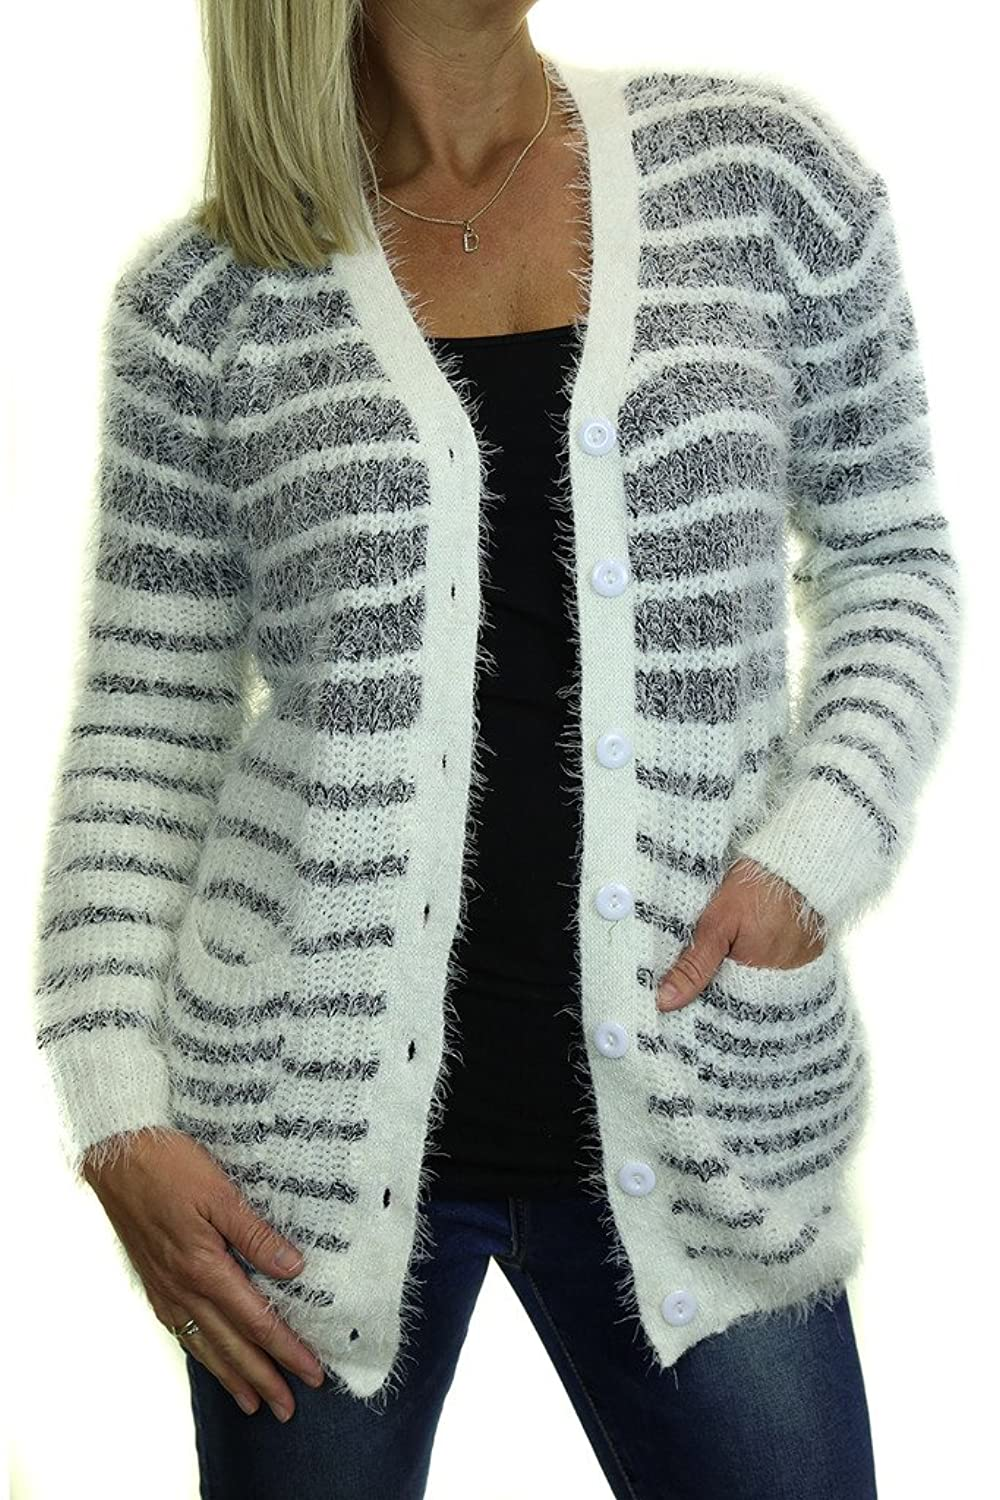 ICE (5137-2) Thin/Thick Stripe Snow Knit Cardigan With Pockets Grey Cream